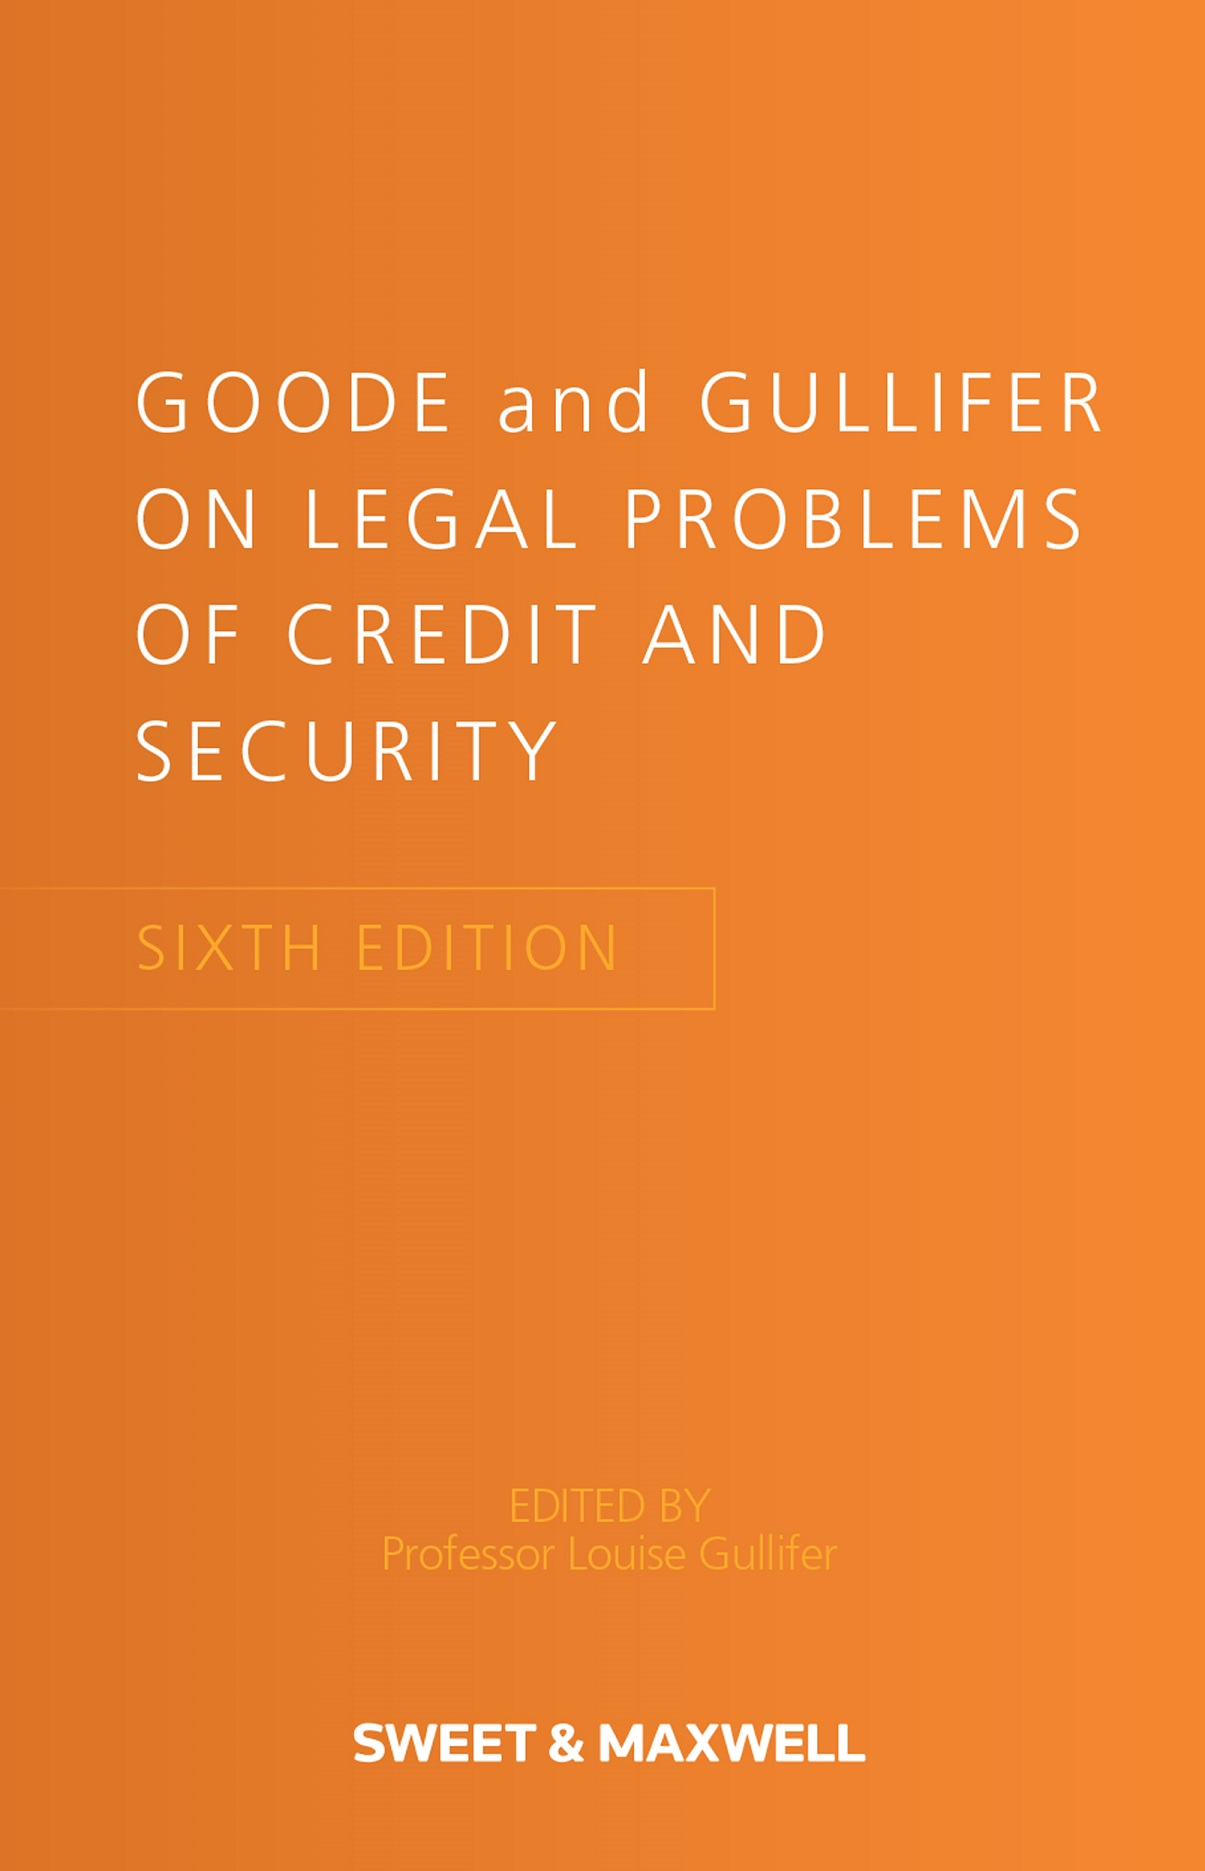 Goode on Legal Problems of Credit and Security, 6th edition